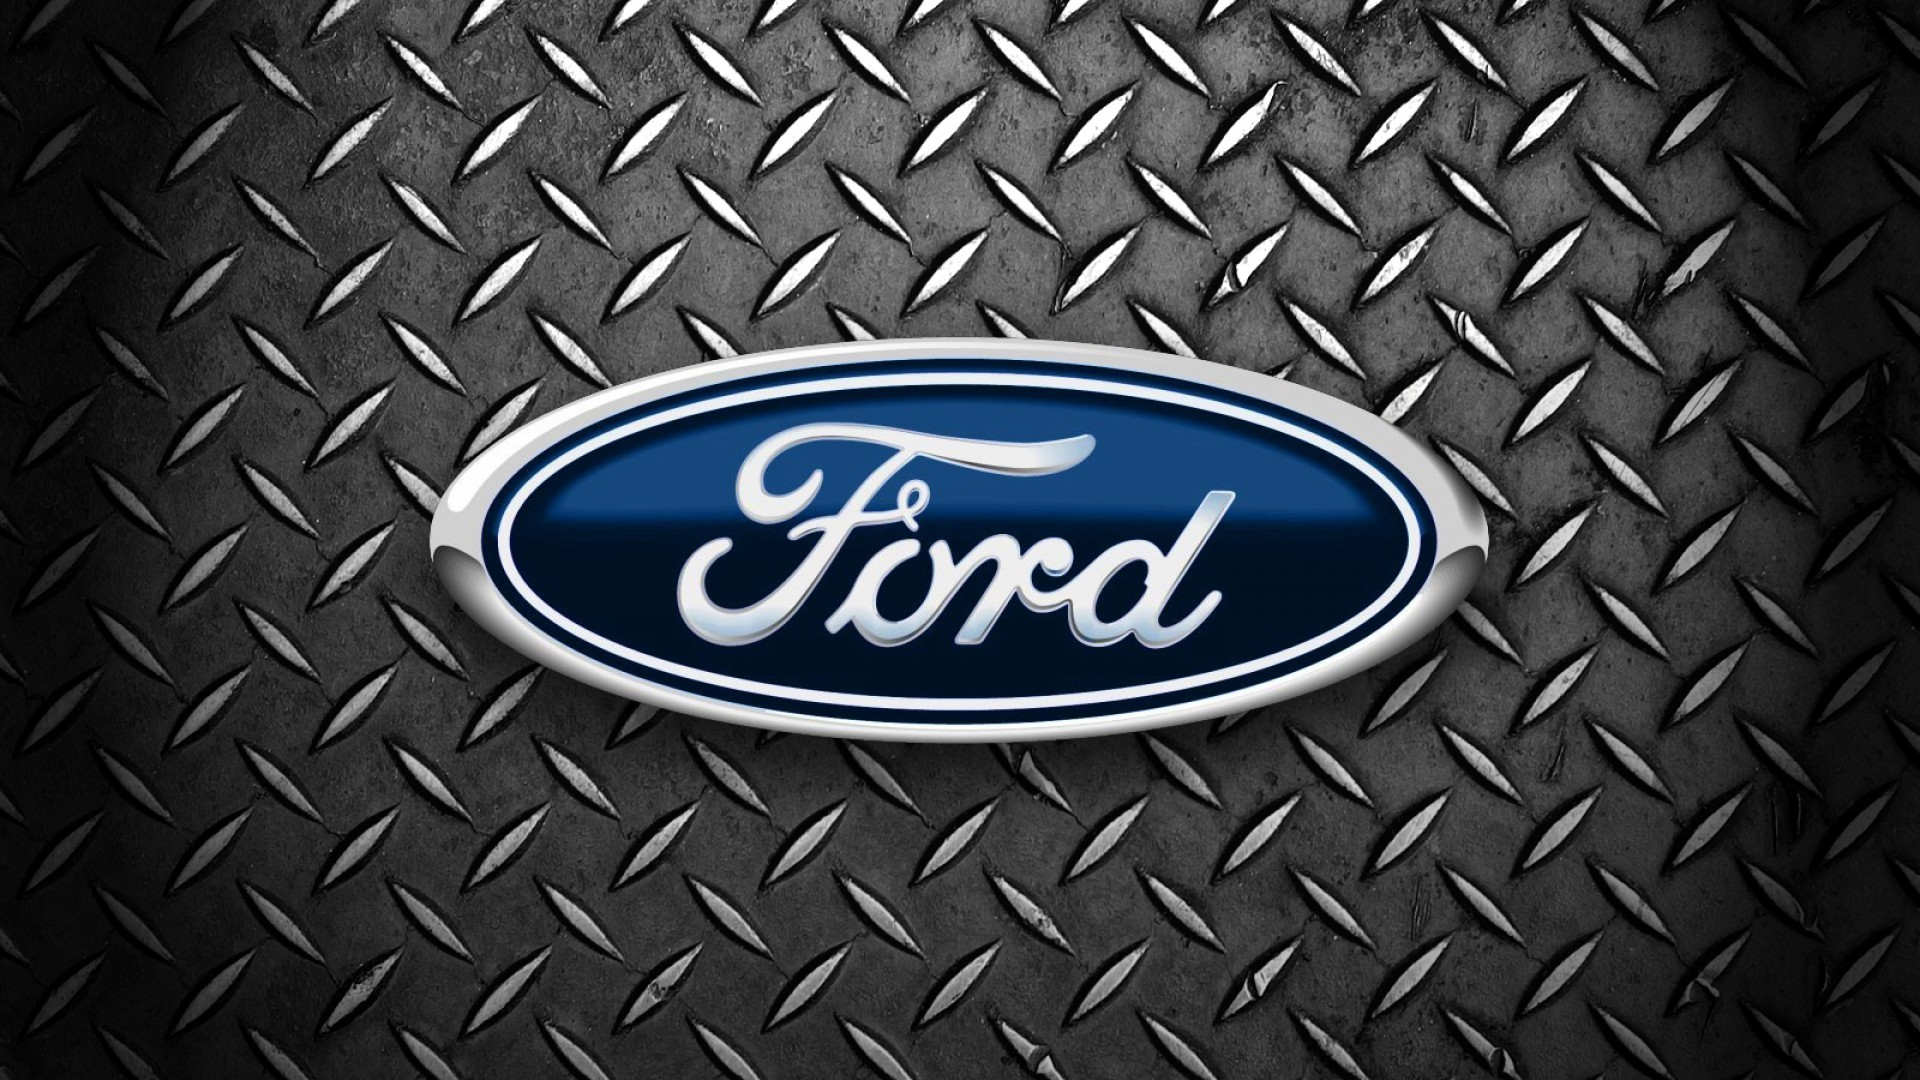 Ford Car Brand Logo 1920x1080 - My Site